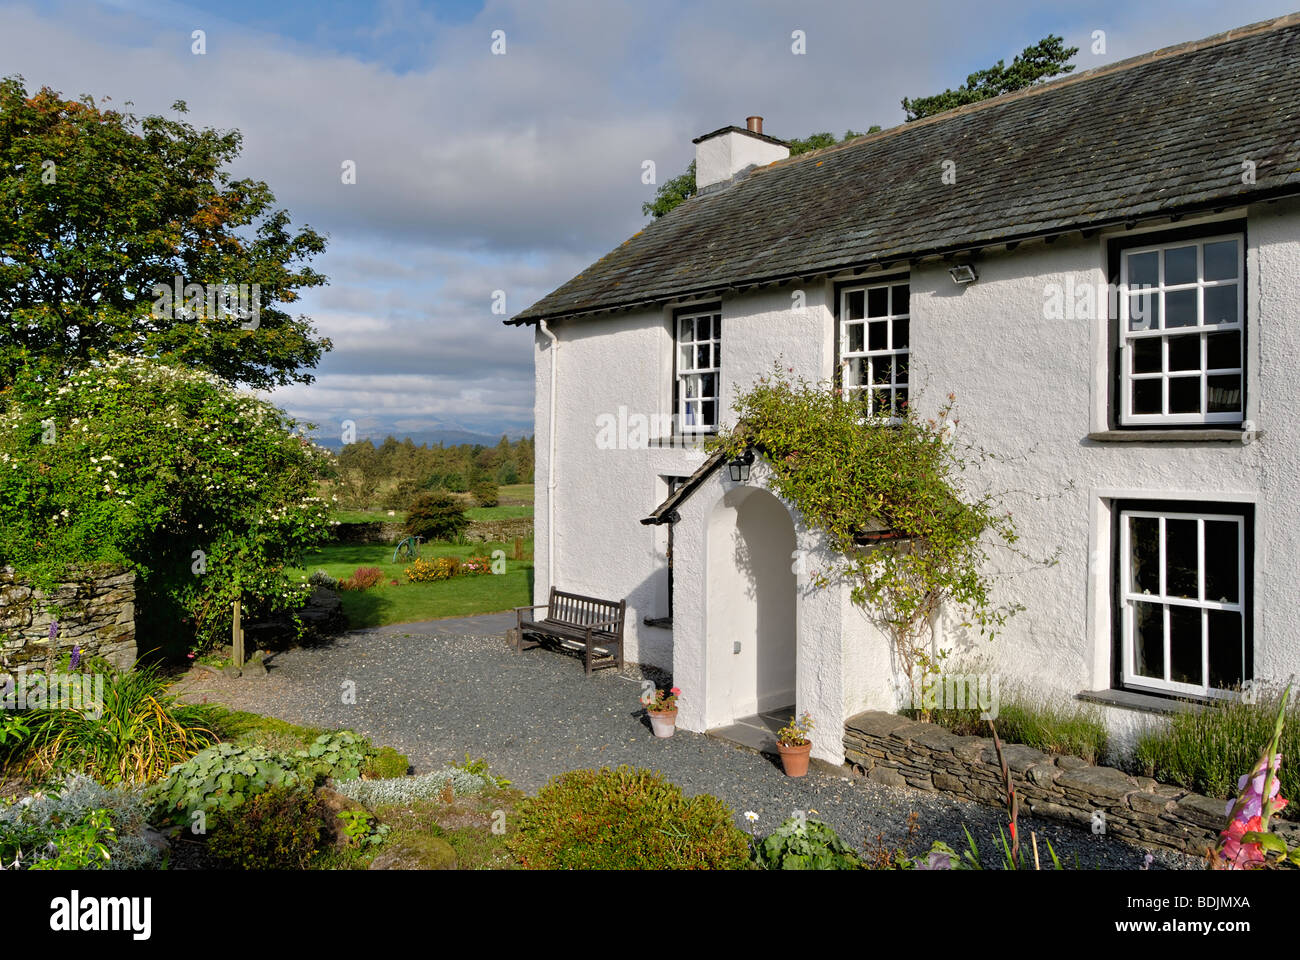 A Typical whitewashed country cottage set in open countryside in the English Lake District Stock Photo